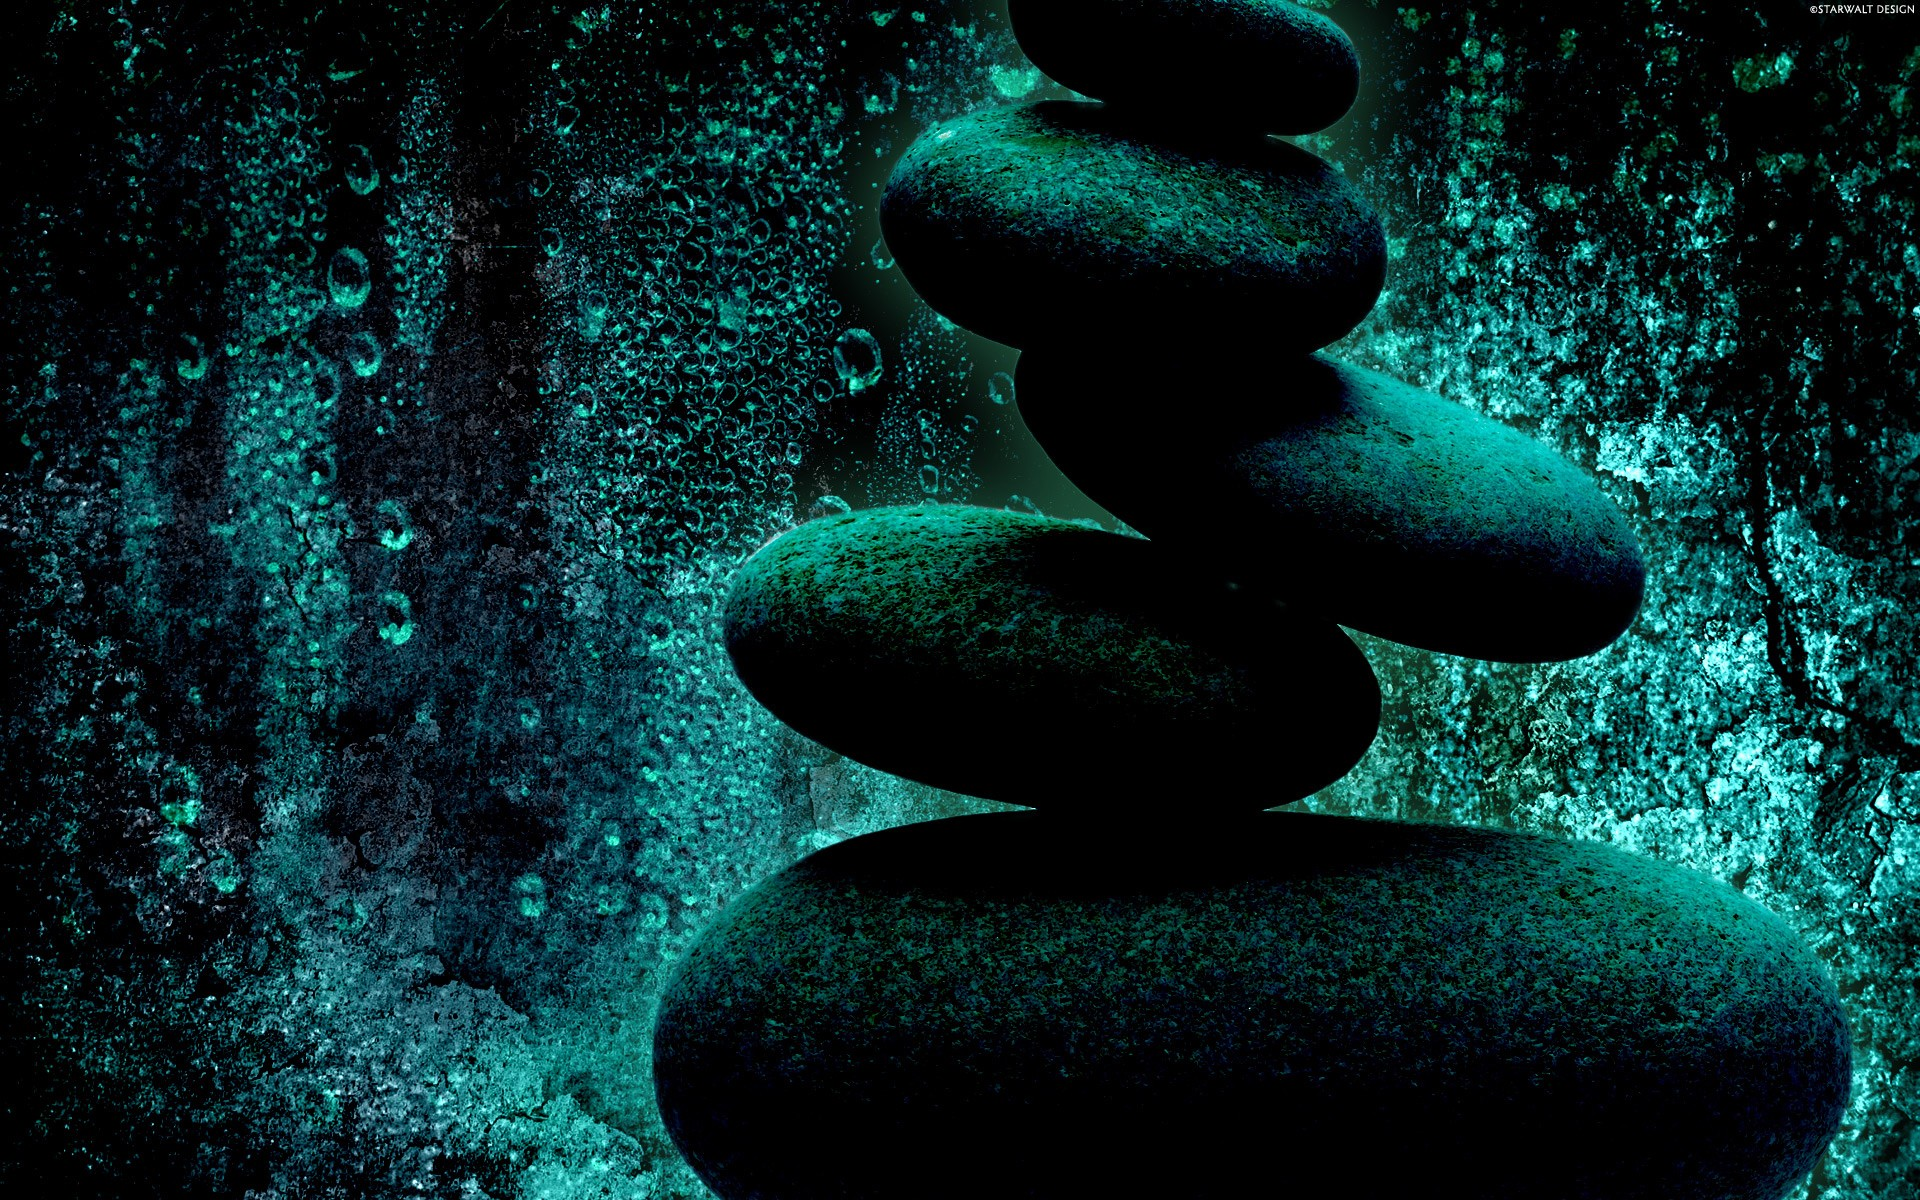 Wallpaper Love Each Other : Rocks on top of each other wallpapers Rocks on top of each other stock photos